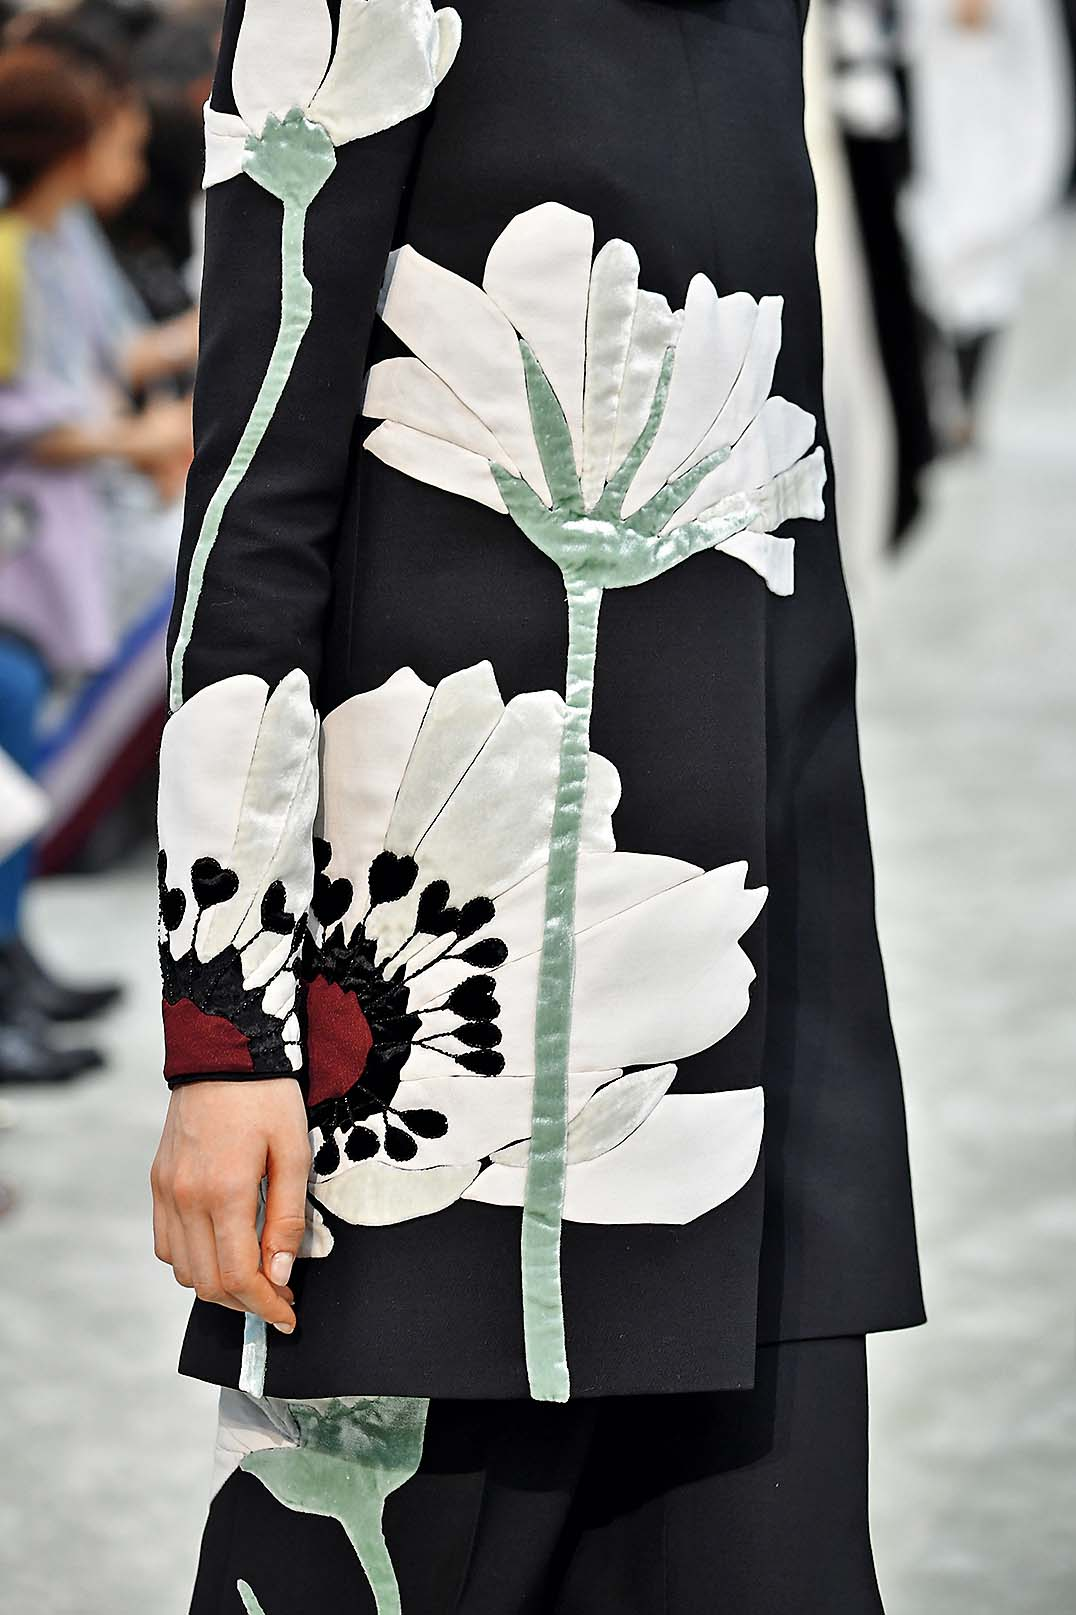 PARIS, FRANCE - MARCH 04:  A model, fashion detail, walks the runway during the Valentino show as part of the Paris Fashion Week Womenswear Fall/Winter 2018/2019 on March 4, 2018 in Paris, France.  (Photo by Pascal Le Segretain/Getty Images)